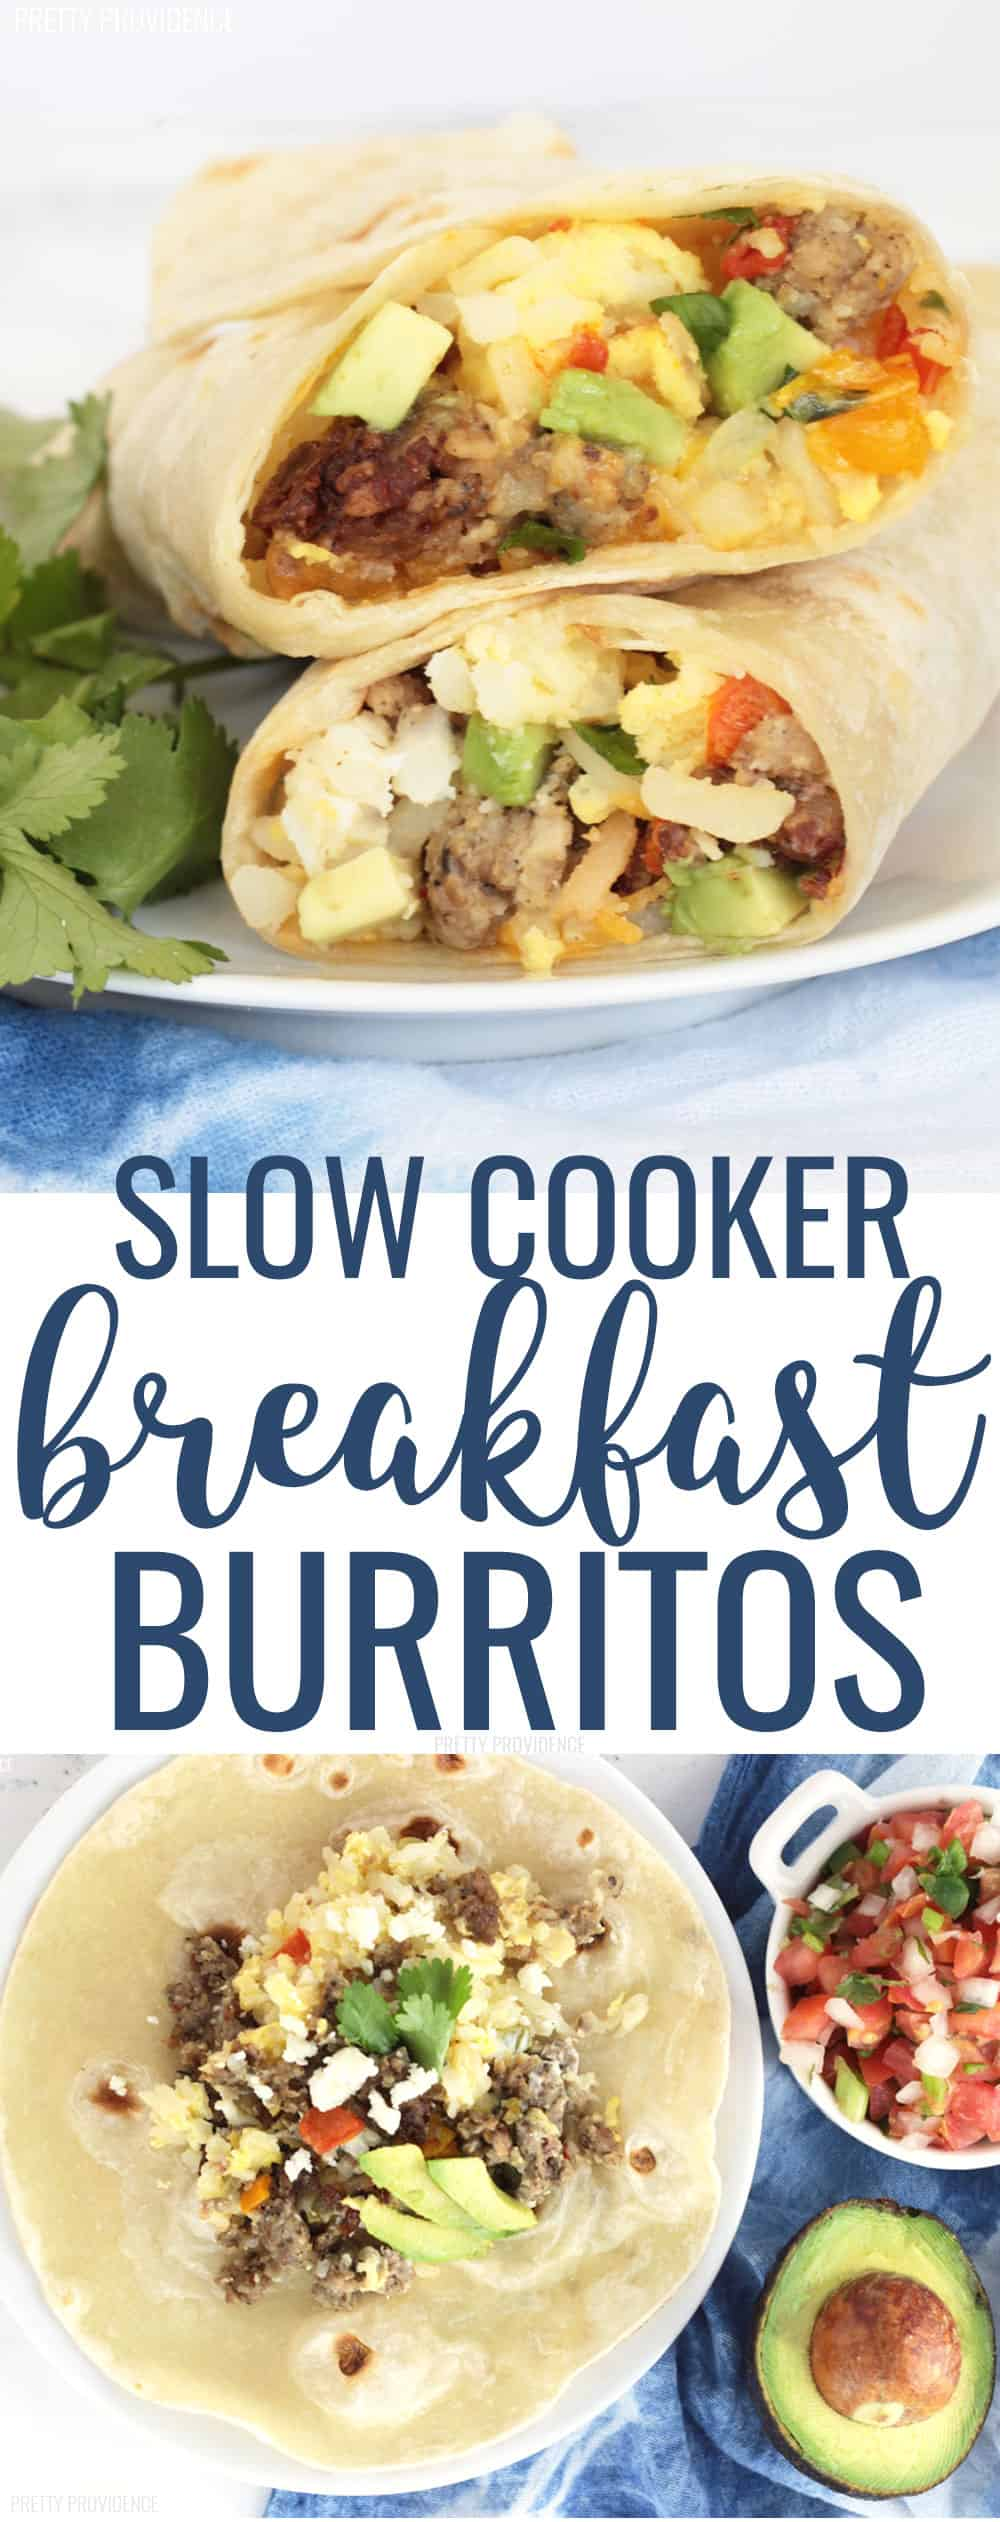 Slow cooker breakfast burritos are the perfect overnight crockpot breakfast recipe! These are DELICIOUS, easy and perfect when you need to feed a crowd! They are also great for stocking your freezer! #slowcookerbreakfast #slowcookerbreakfastburrito #breakfastburritorecipe #breakfastburritos #breakfastrecipes #easybreakfast #breakfastideas #feedacrowd #easyrecipe #crockpot #crockpotrecipes #slowcooker #slowcookerrecipes